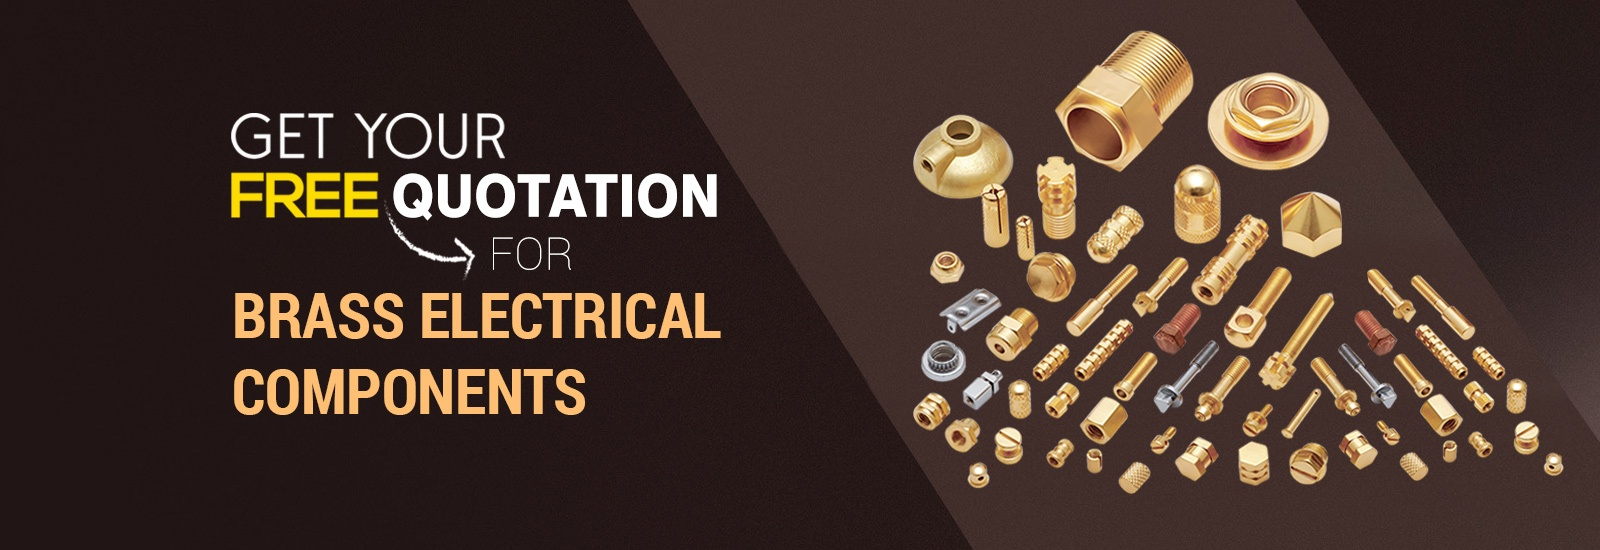 Brass Electrical Components Manufacturer